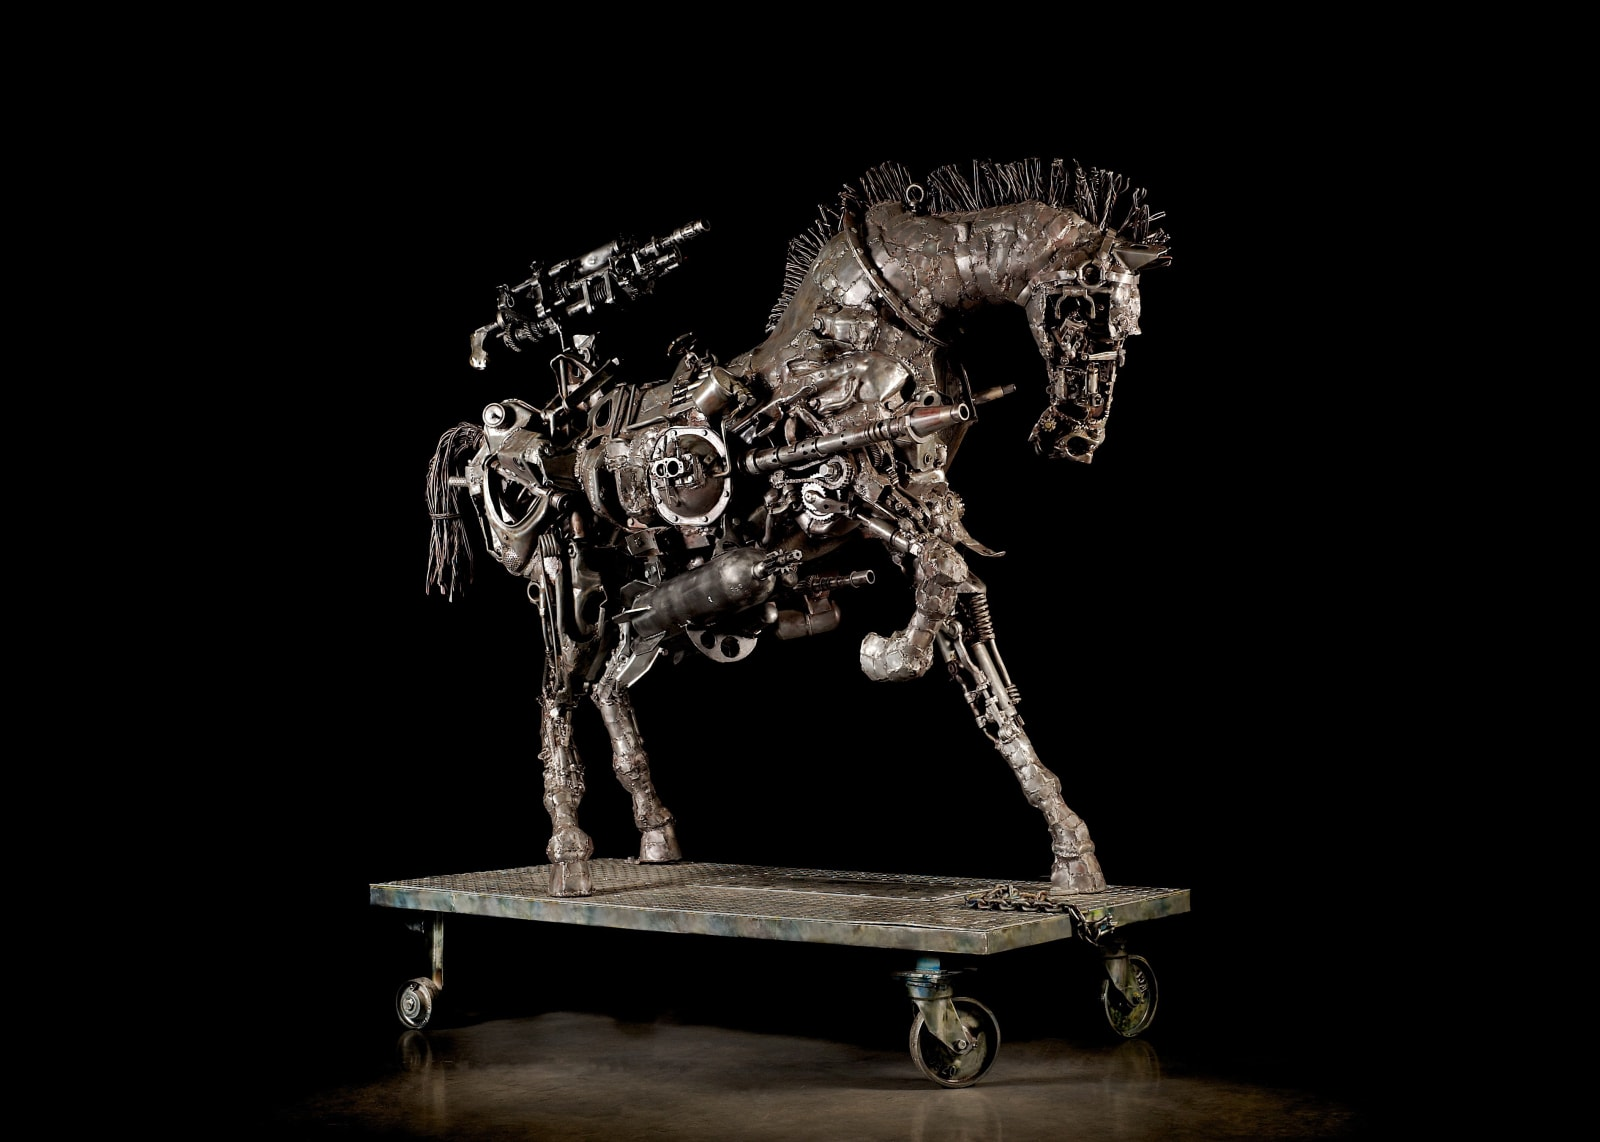 Willie Bester, Trojan Horse, Conceived and fabricated 2007